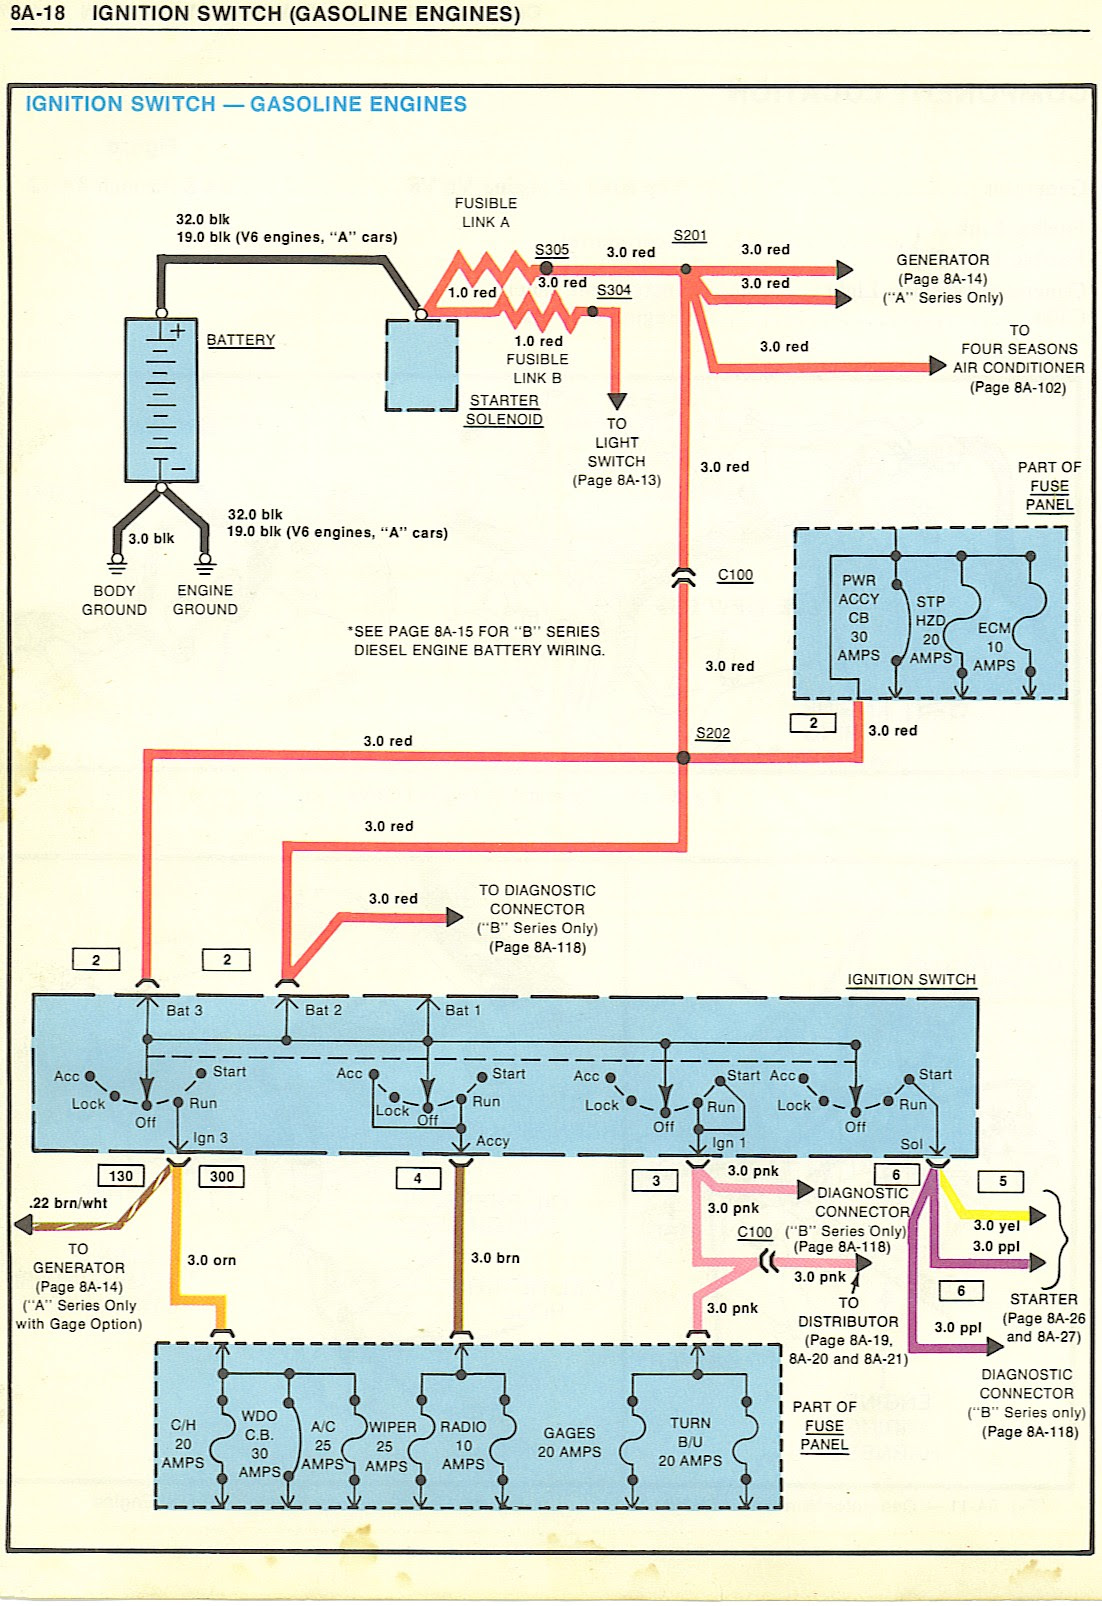 1975 Chevelle Wiring Schematic Wiring Diagram Octavia A Octavia A Musikami It